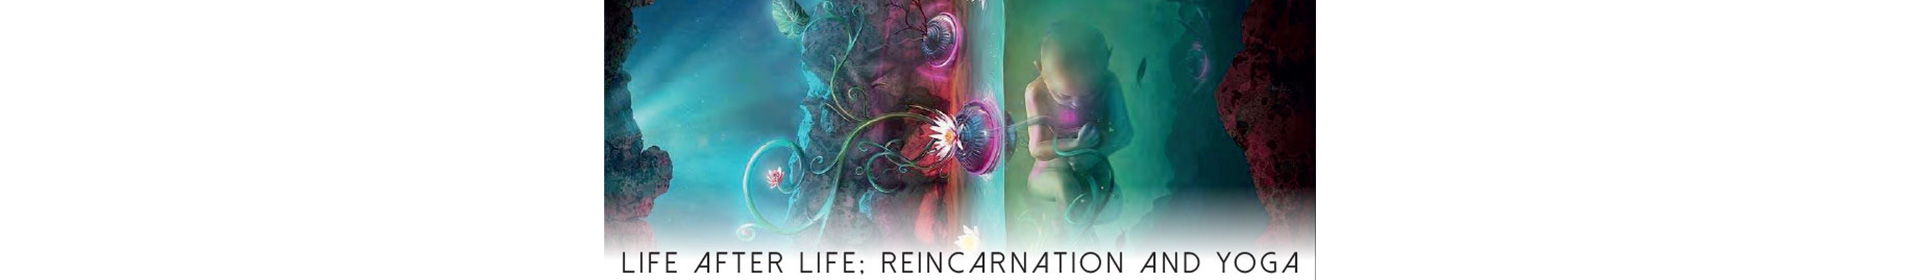 Life after Life Reincarnation and Yoga Jivamukti FOTM